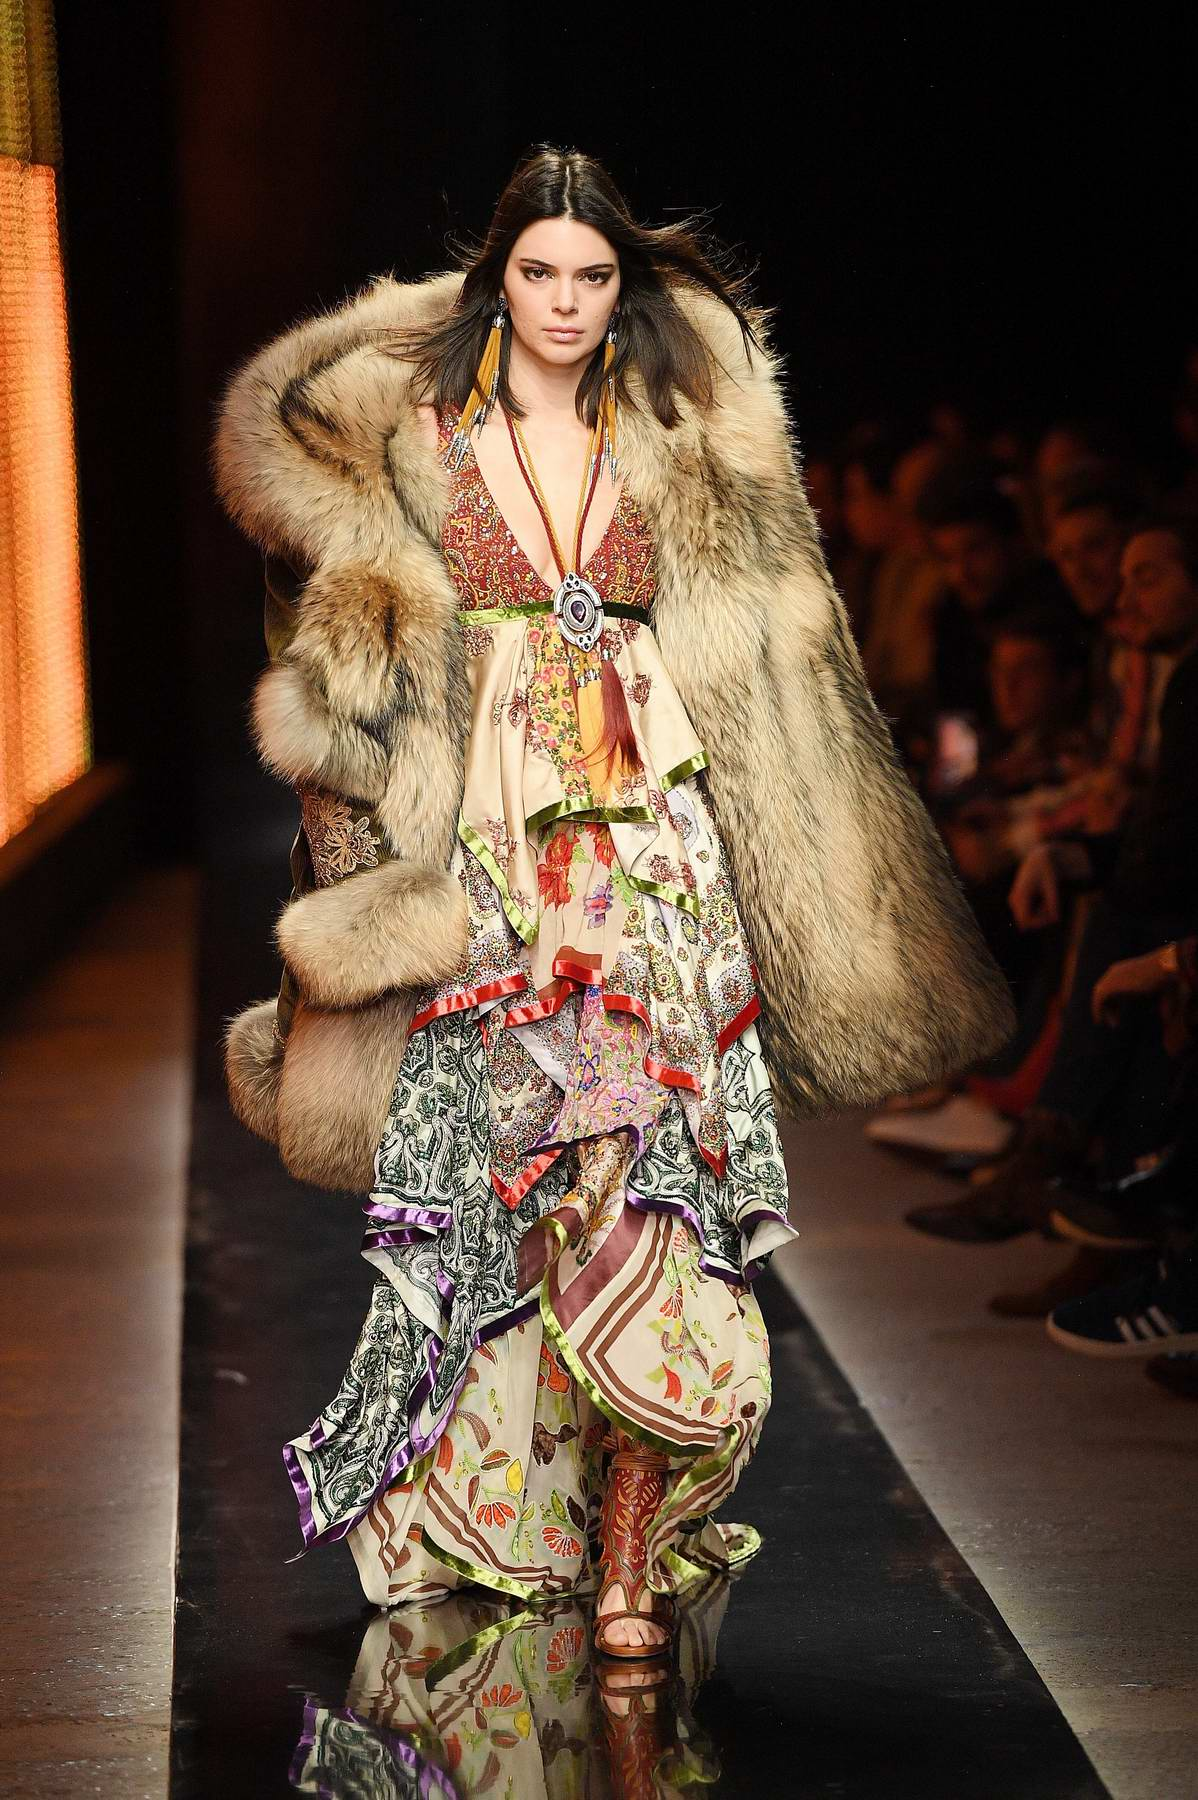 Kendall Jenner Walks The Runway At The Dsquared2 Show